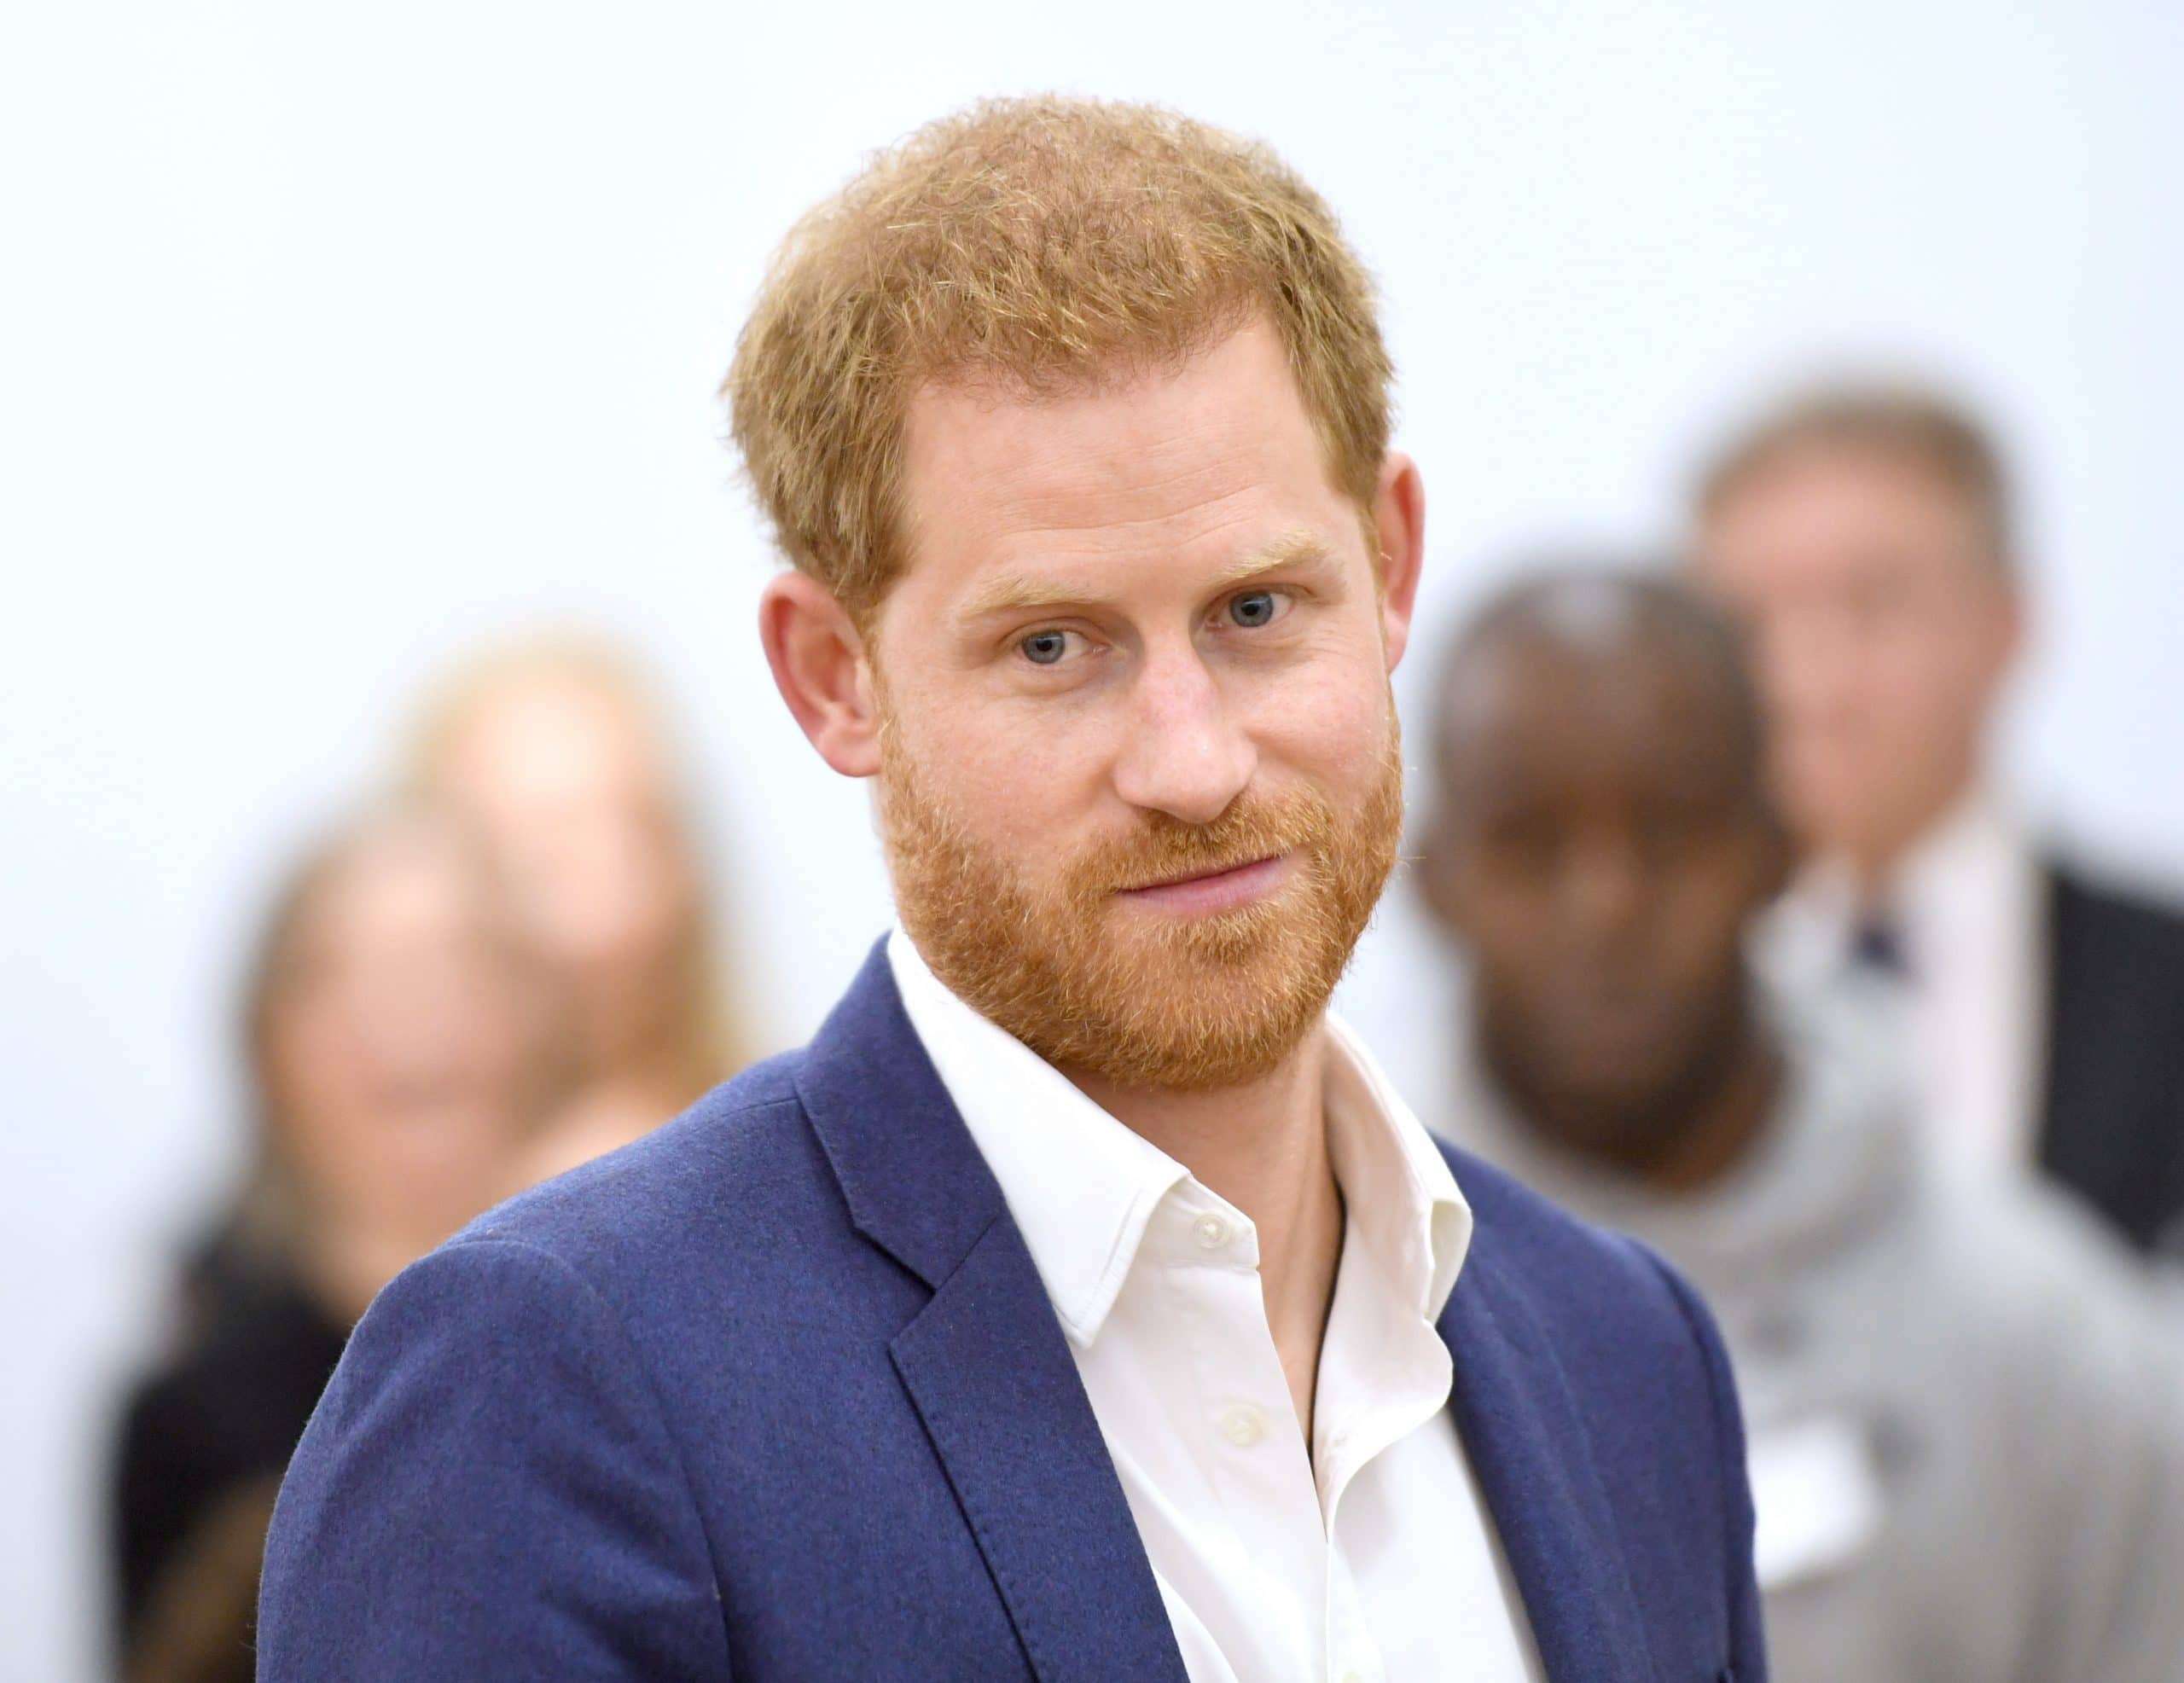 Prince Harry Has This Regret Over His Last Phone Call With Princess Diana